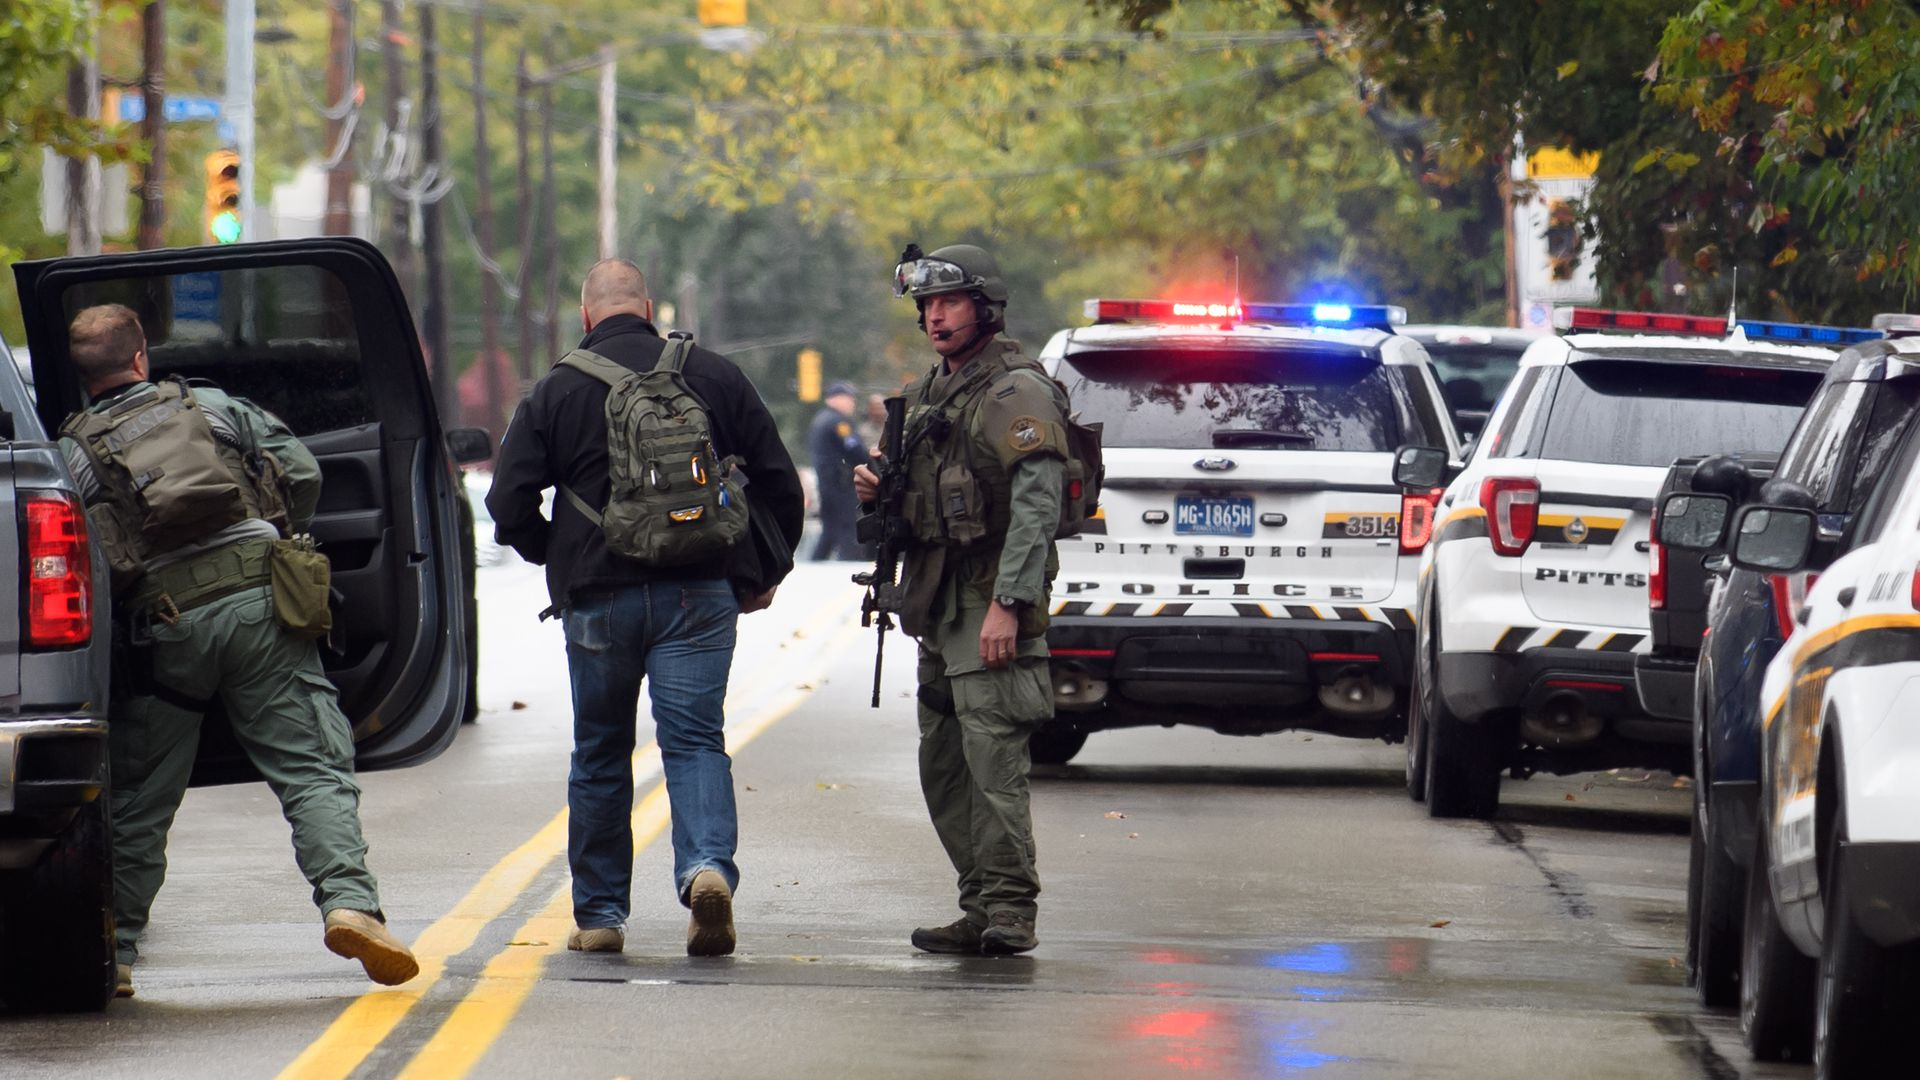 11 dead, 6 wounded, suspect in custody in Pittsburgh synagogue